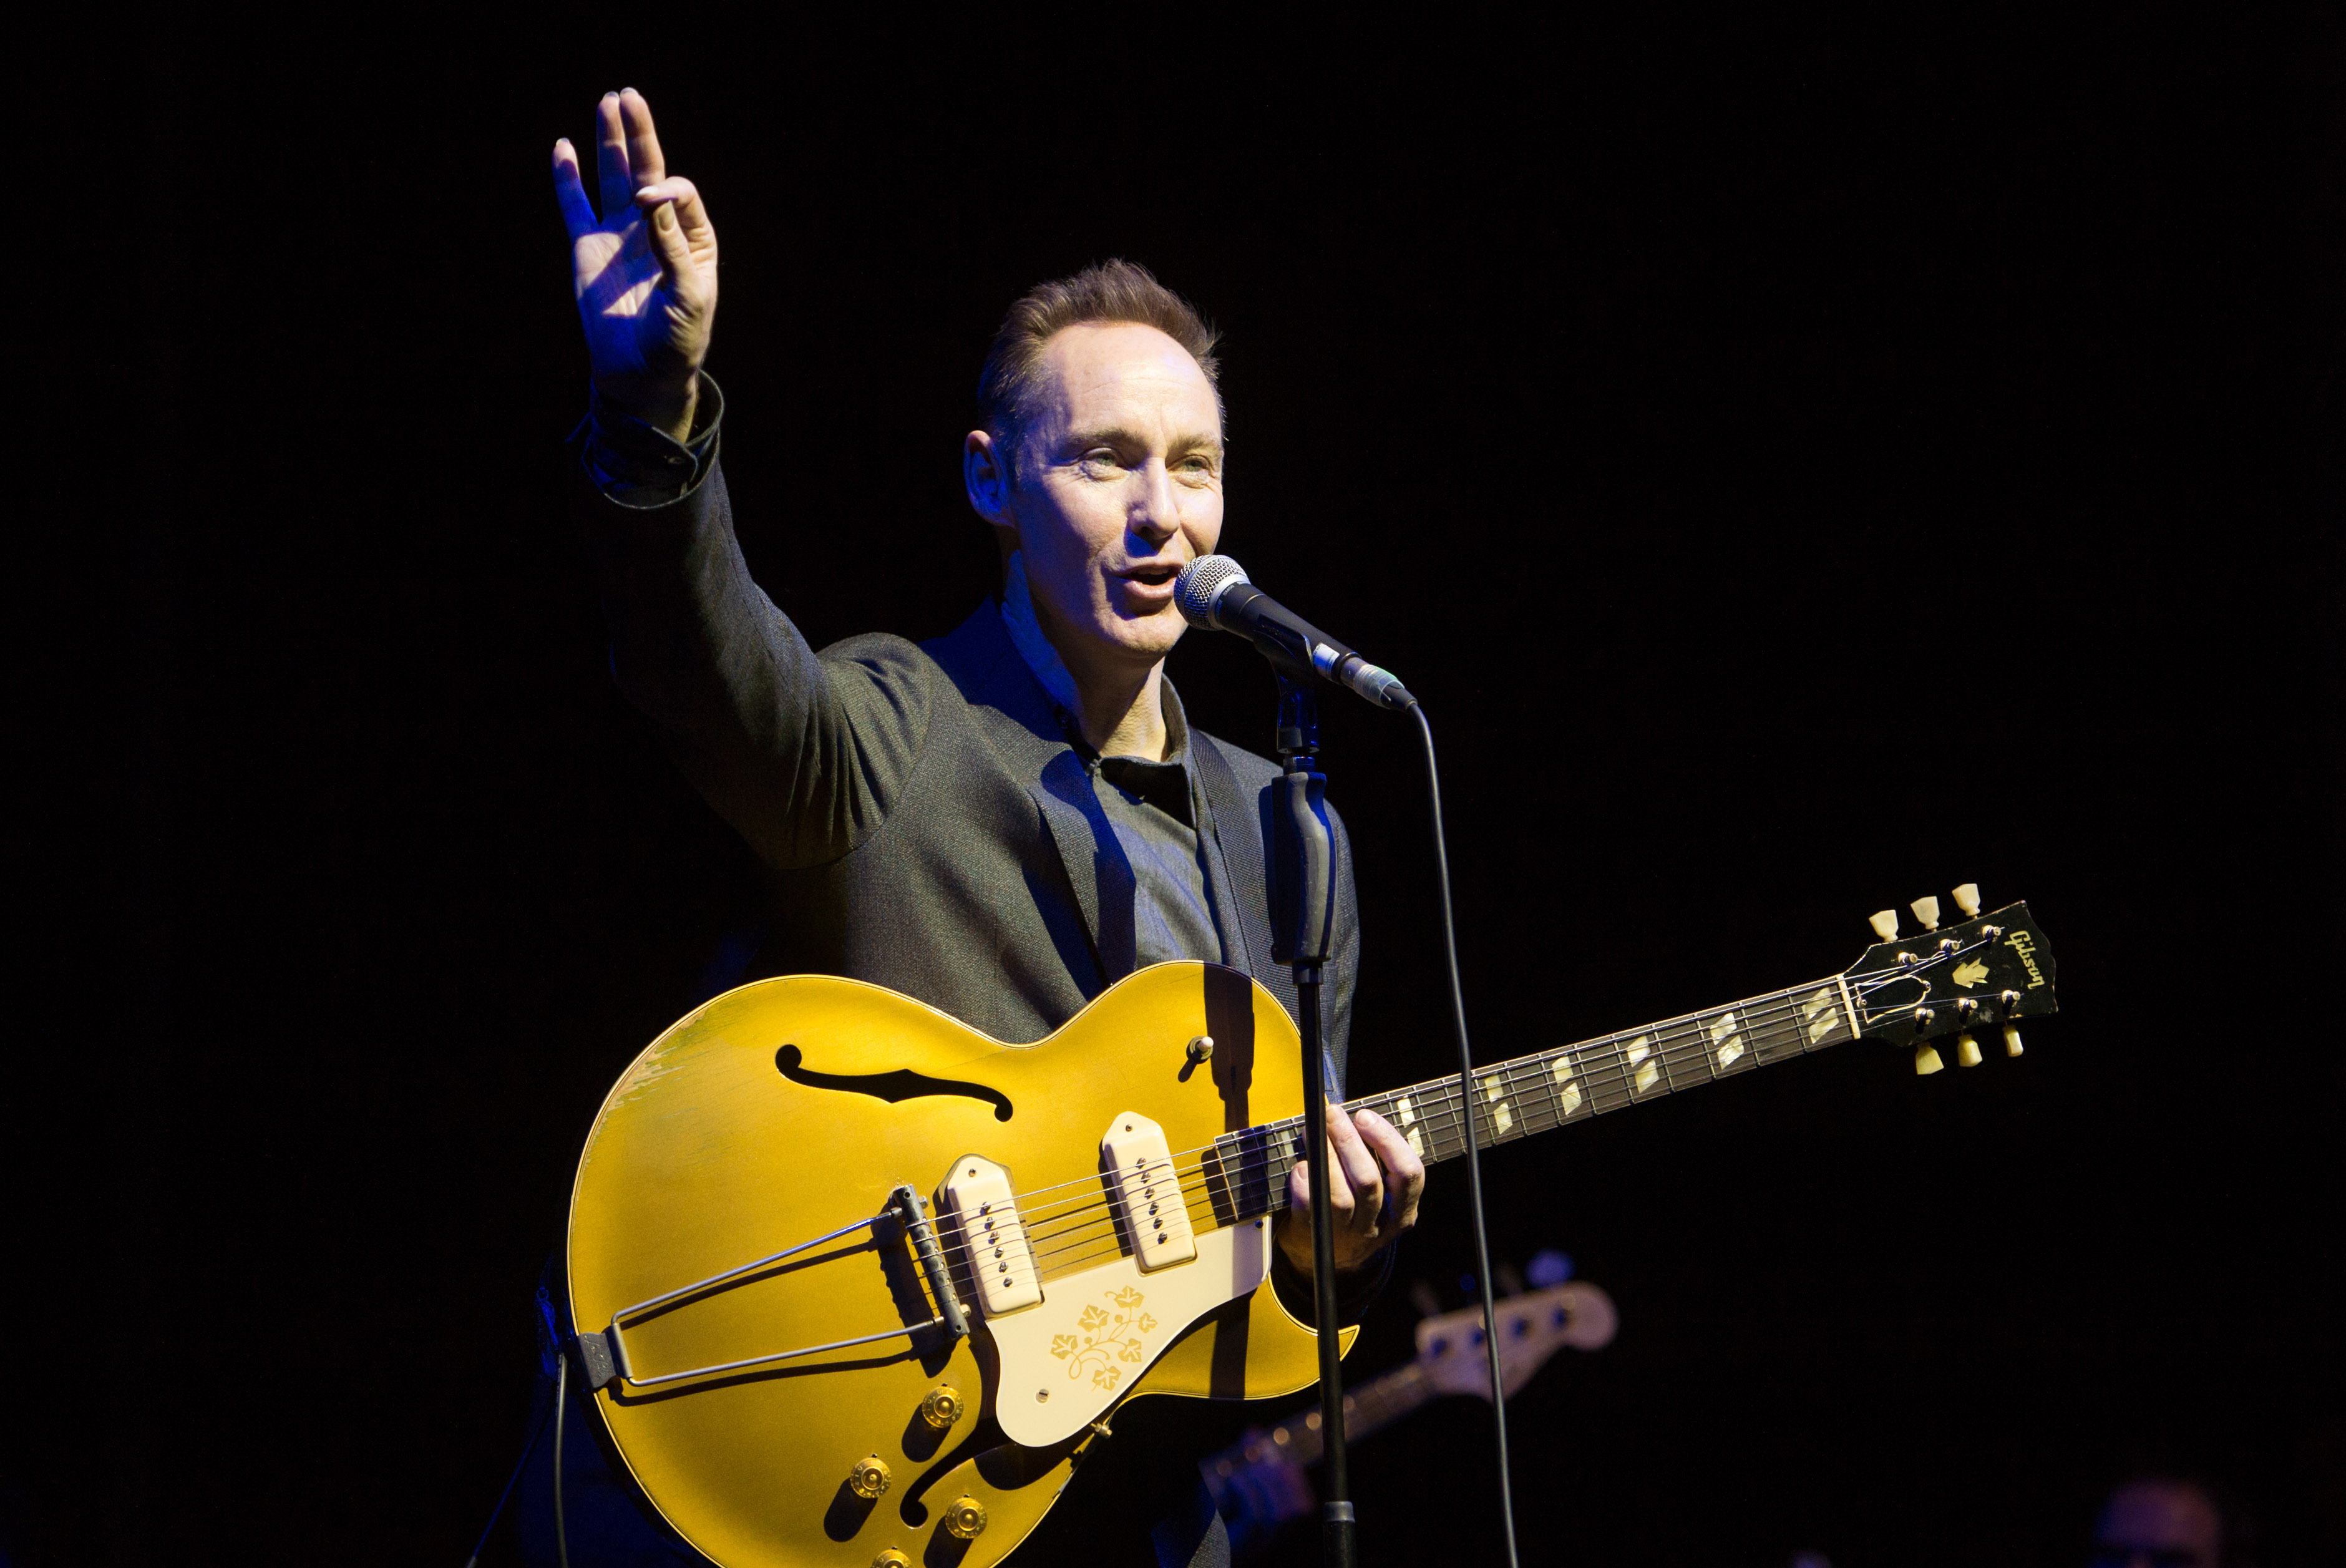 LONDON, ENGLAND - DECEMBER 1: Roddy Frame performs live on stage at the Theatre Royal on December 1, 2013 in London, England.